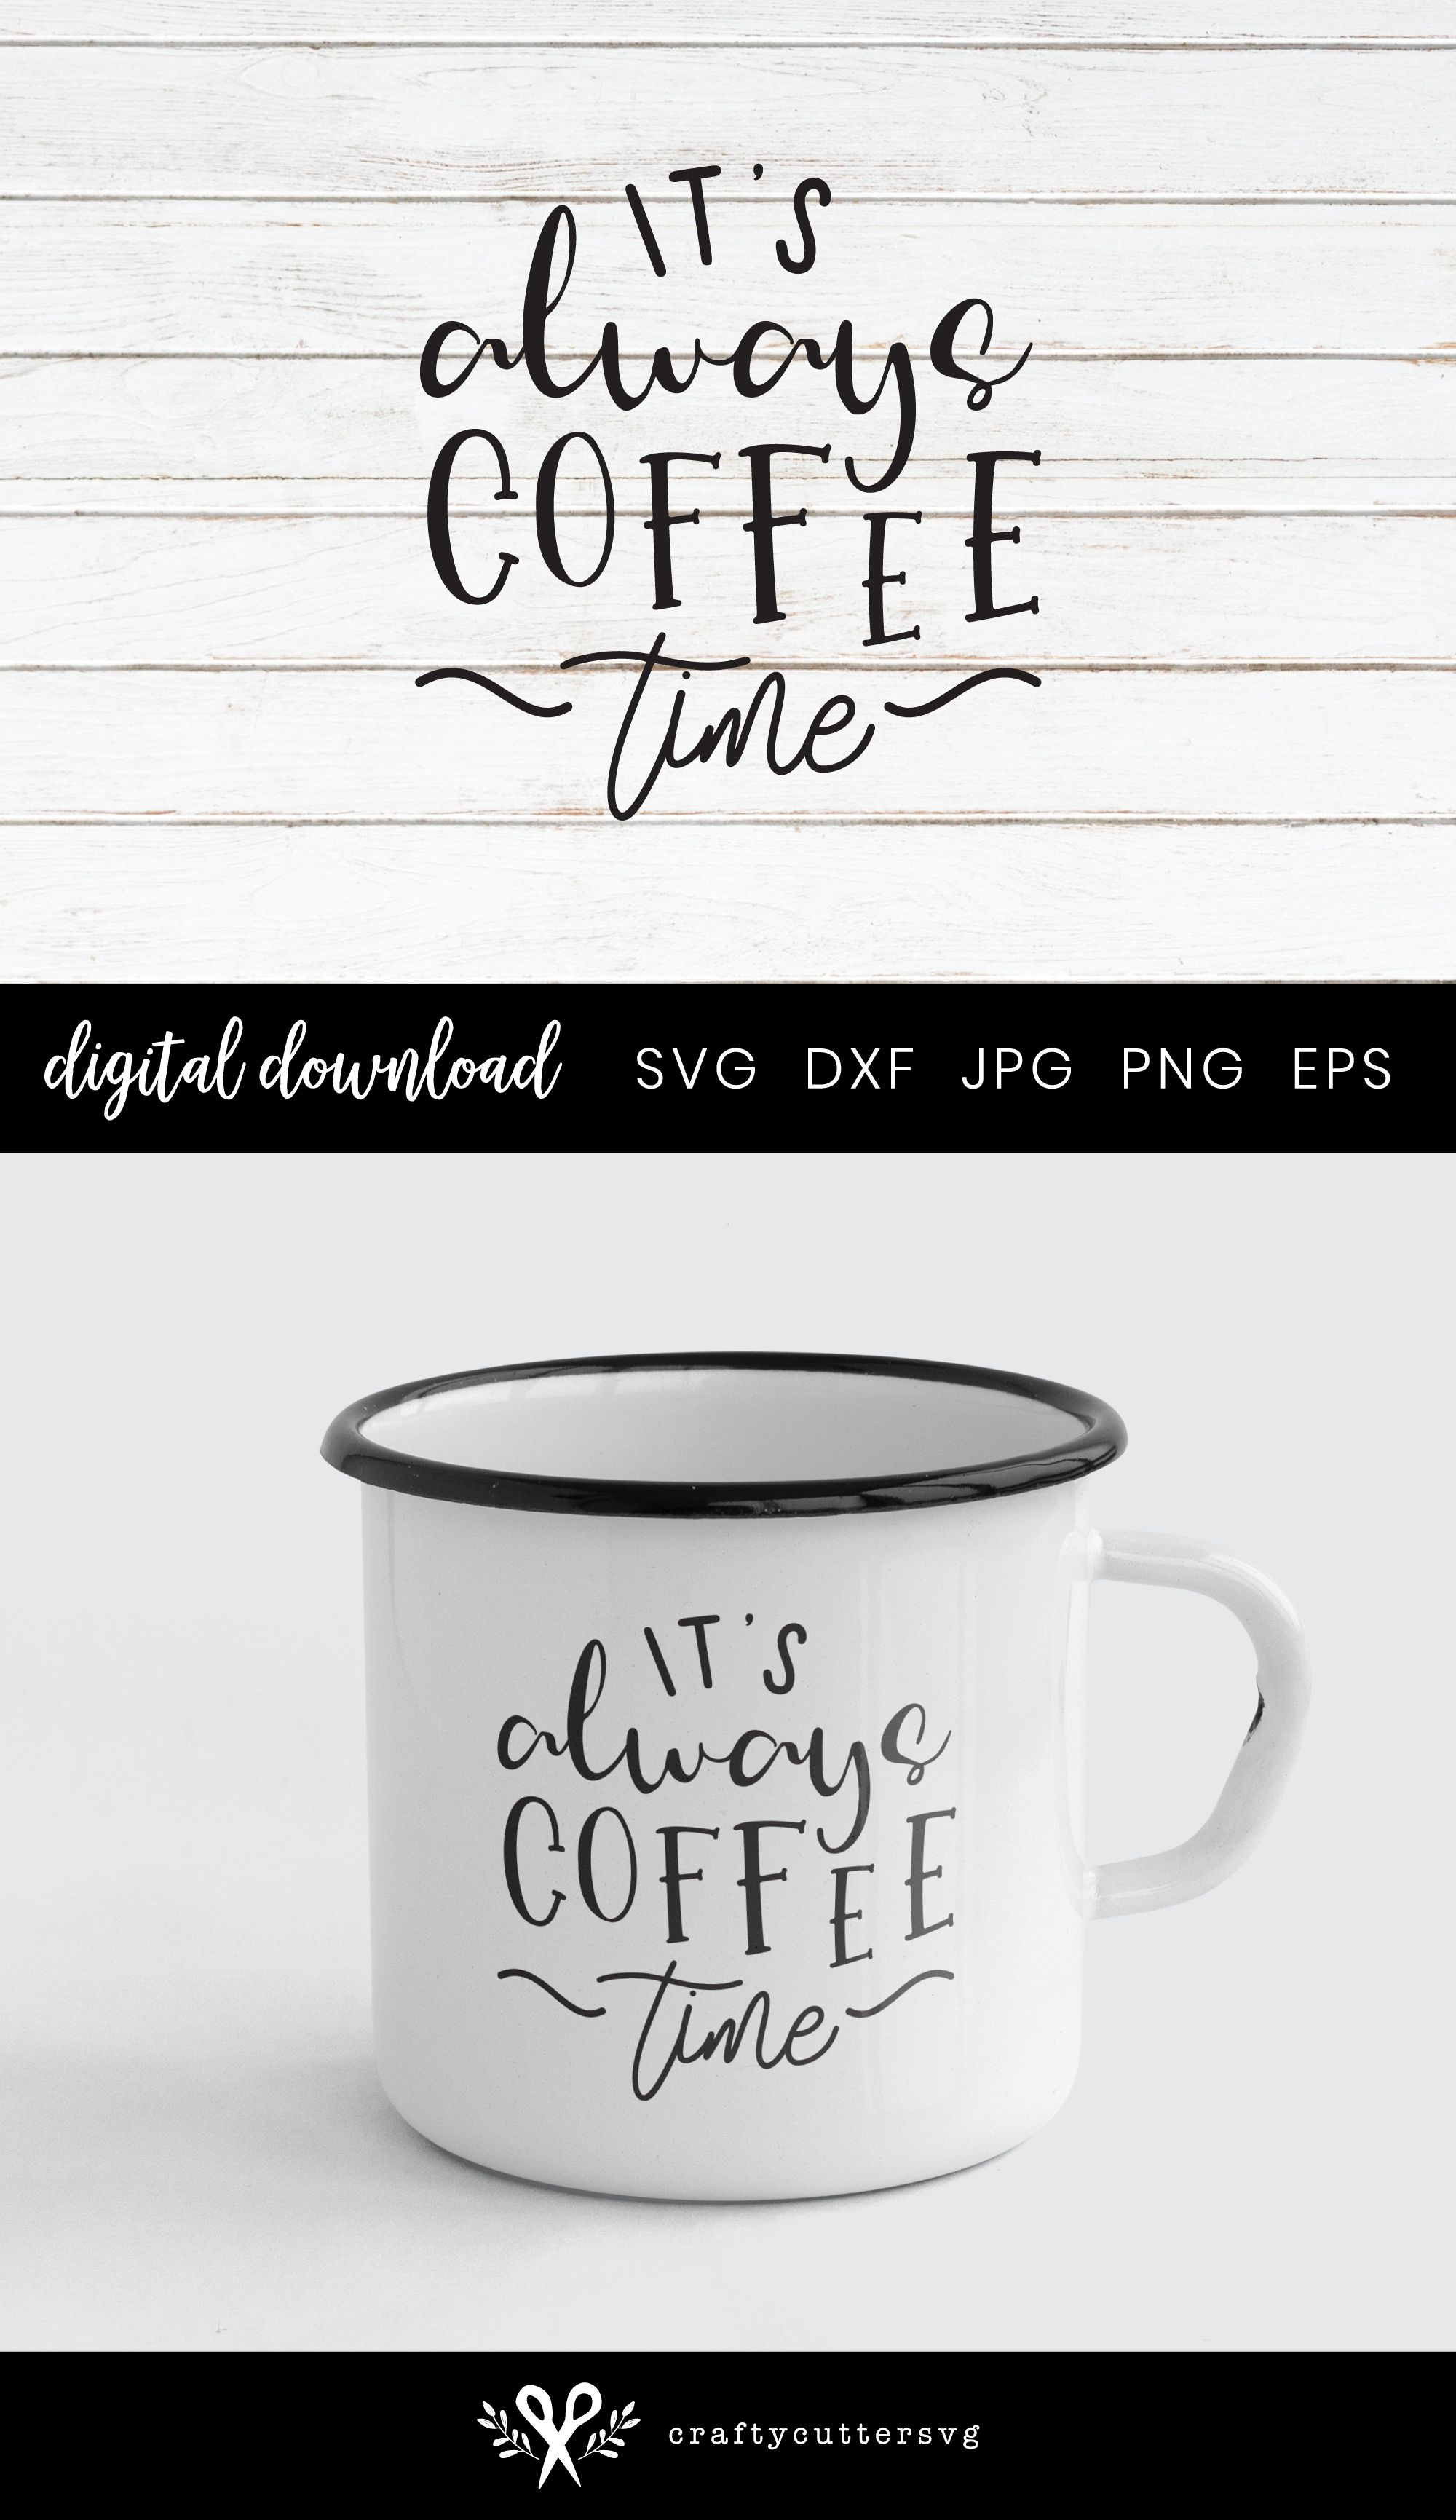 It's always coffee time Svg Cutting File for Coffee Mug (290052) | SVGs | Design Bundles